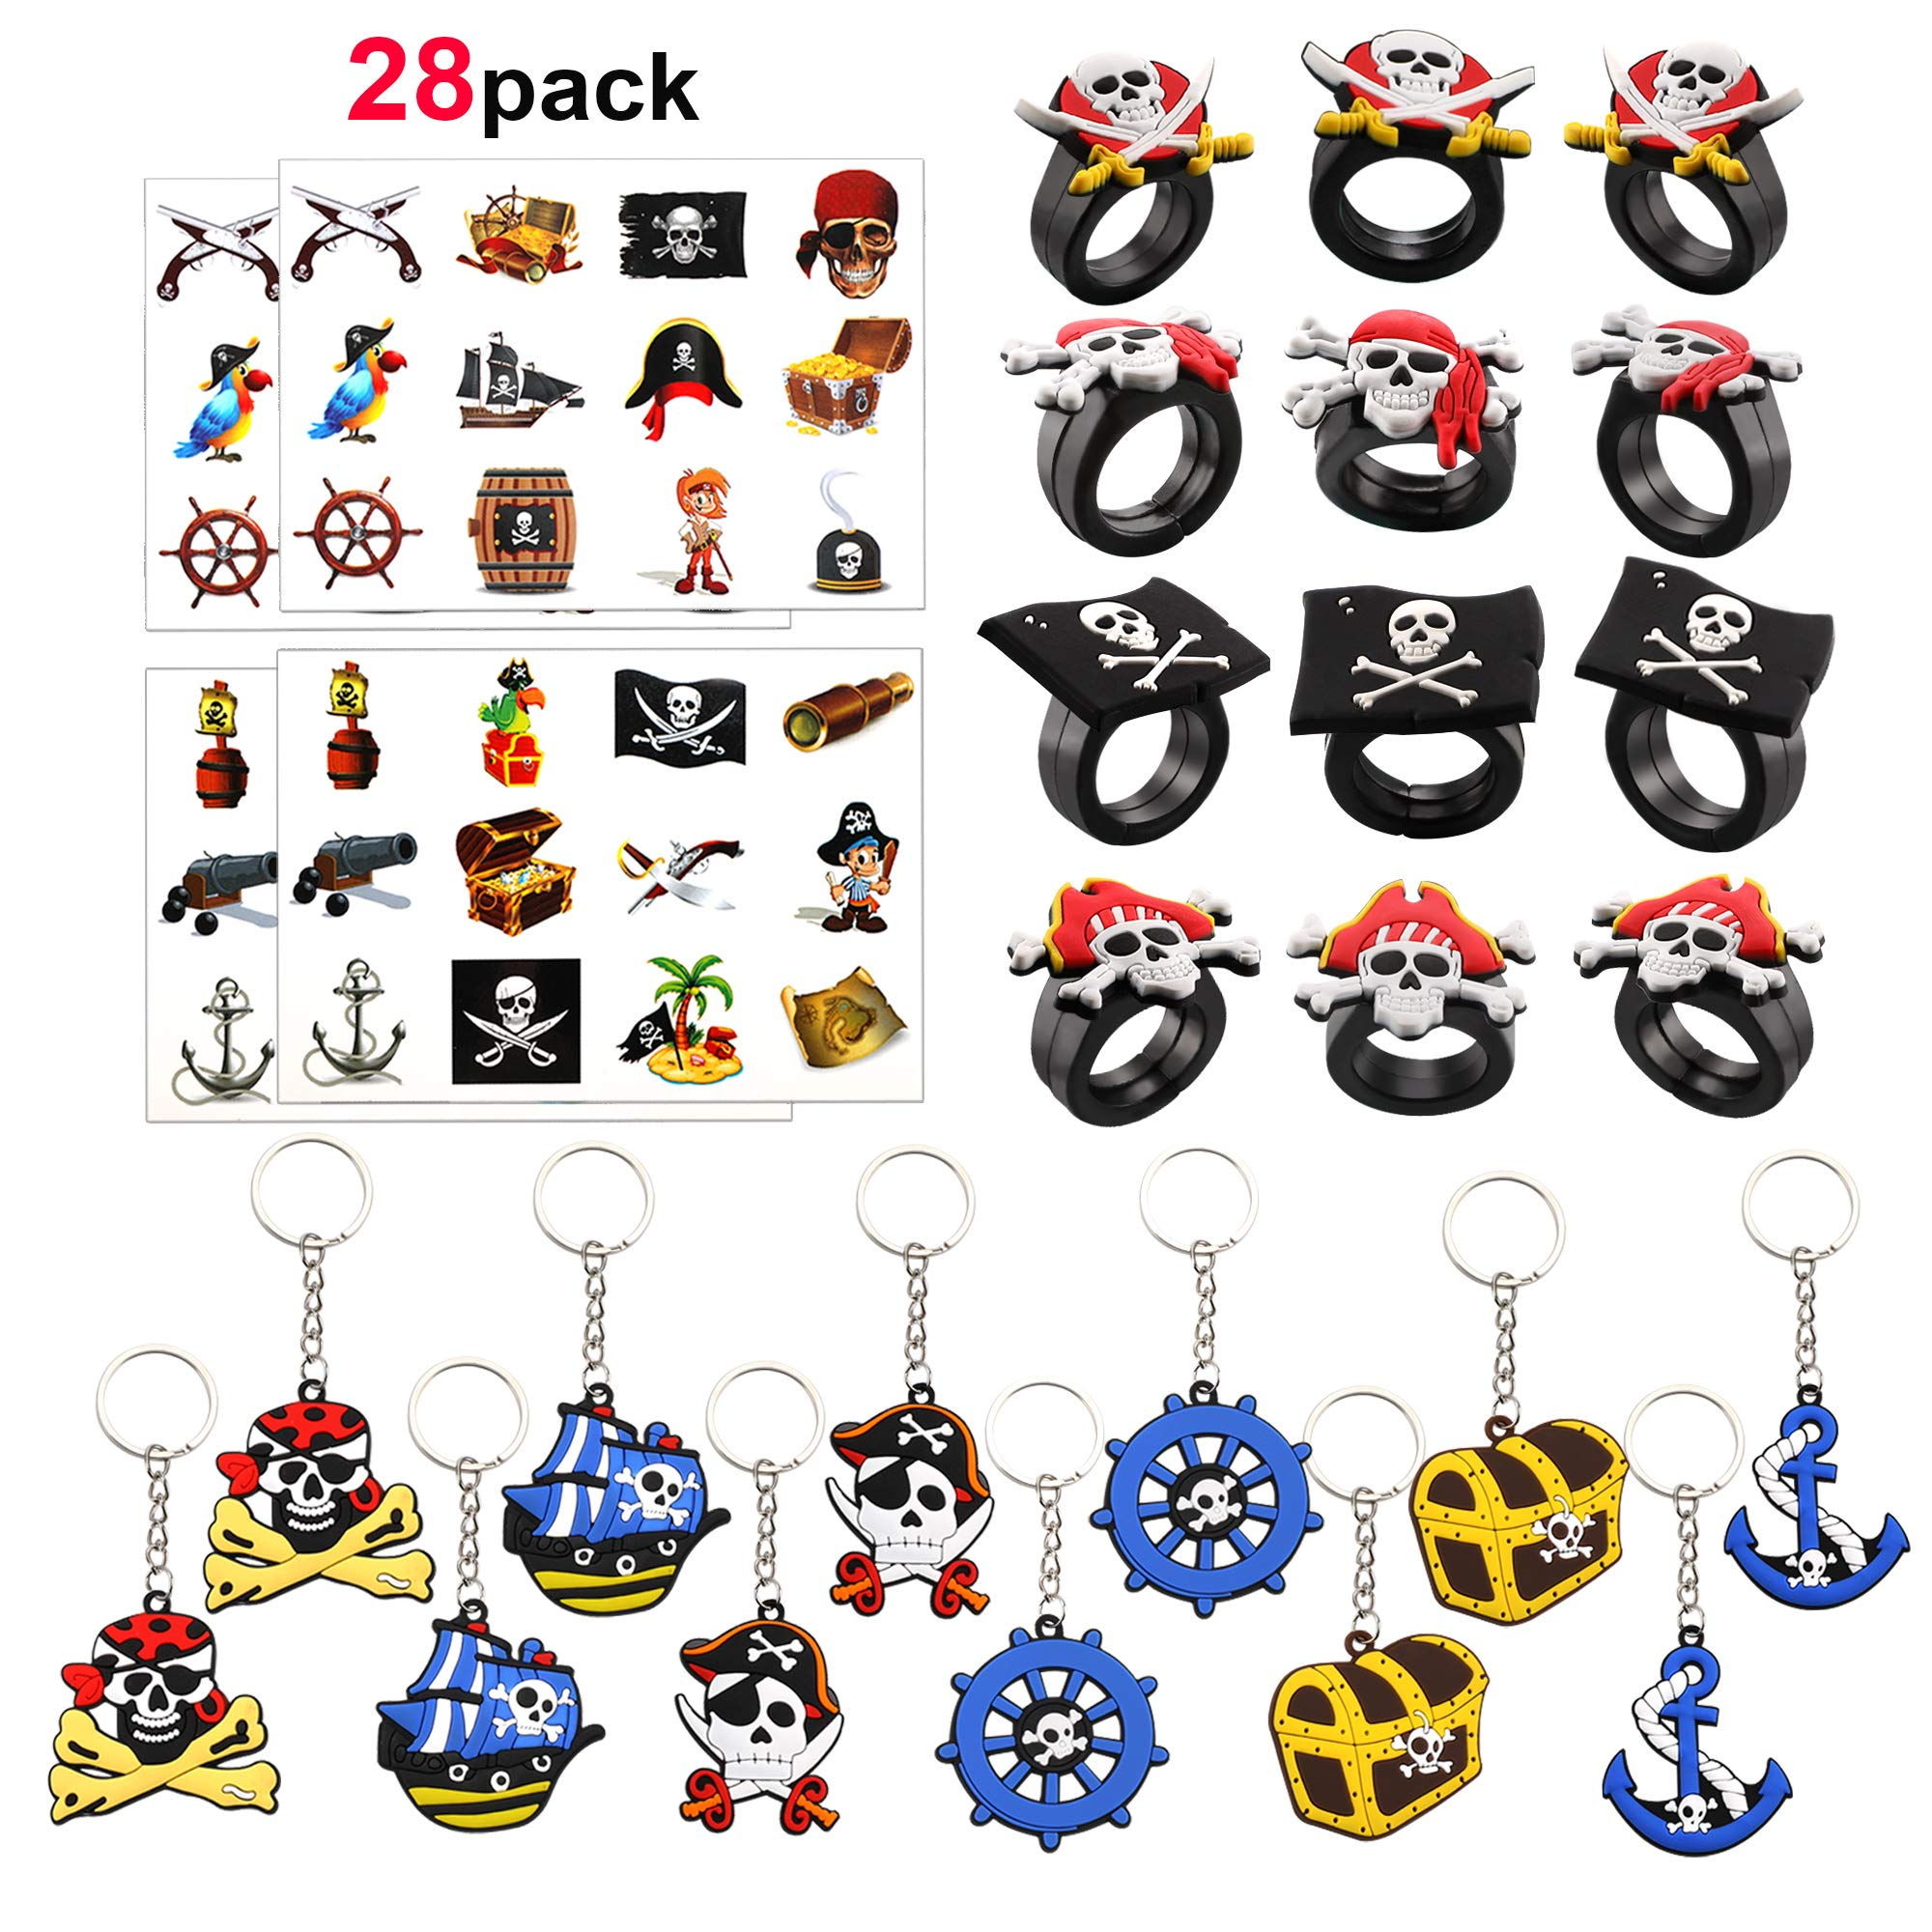 HOWAF Party Bag Fillers Toys for Kids, Pirate Party Supplies Favours Assortment Pirate Keyrings Rubber Pirate Rings Pirate Temporary Tattoos for Kids Children Birthday, Halloween, Pinata, Prizes